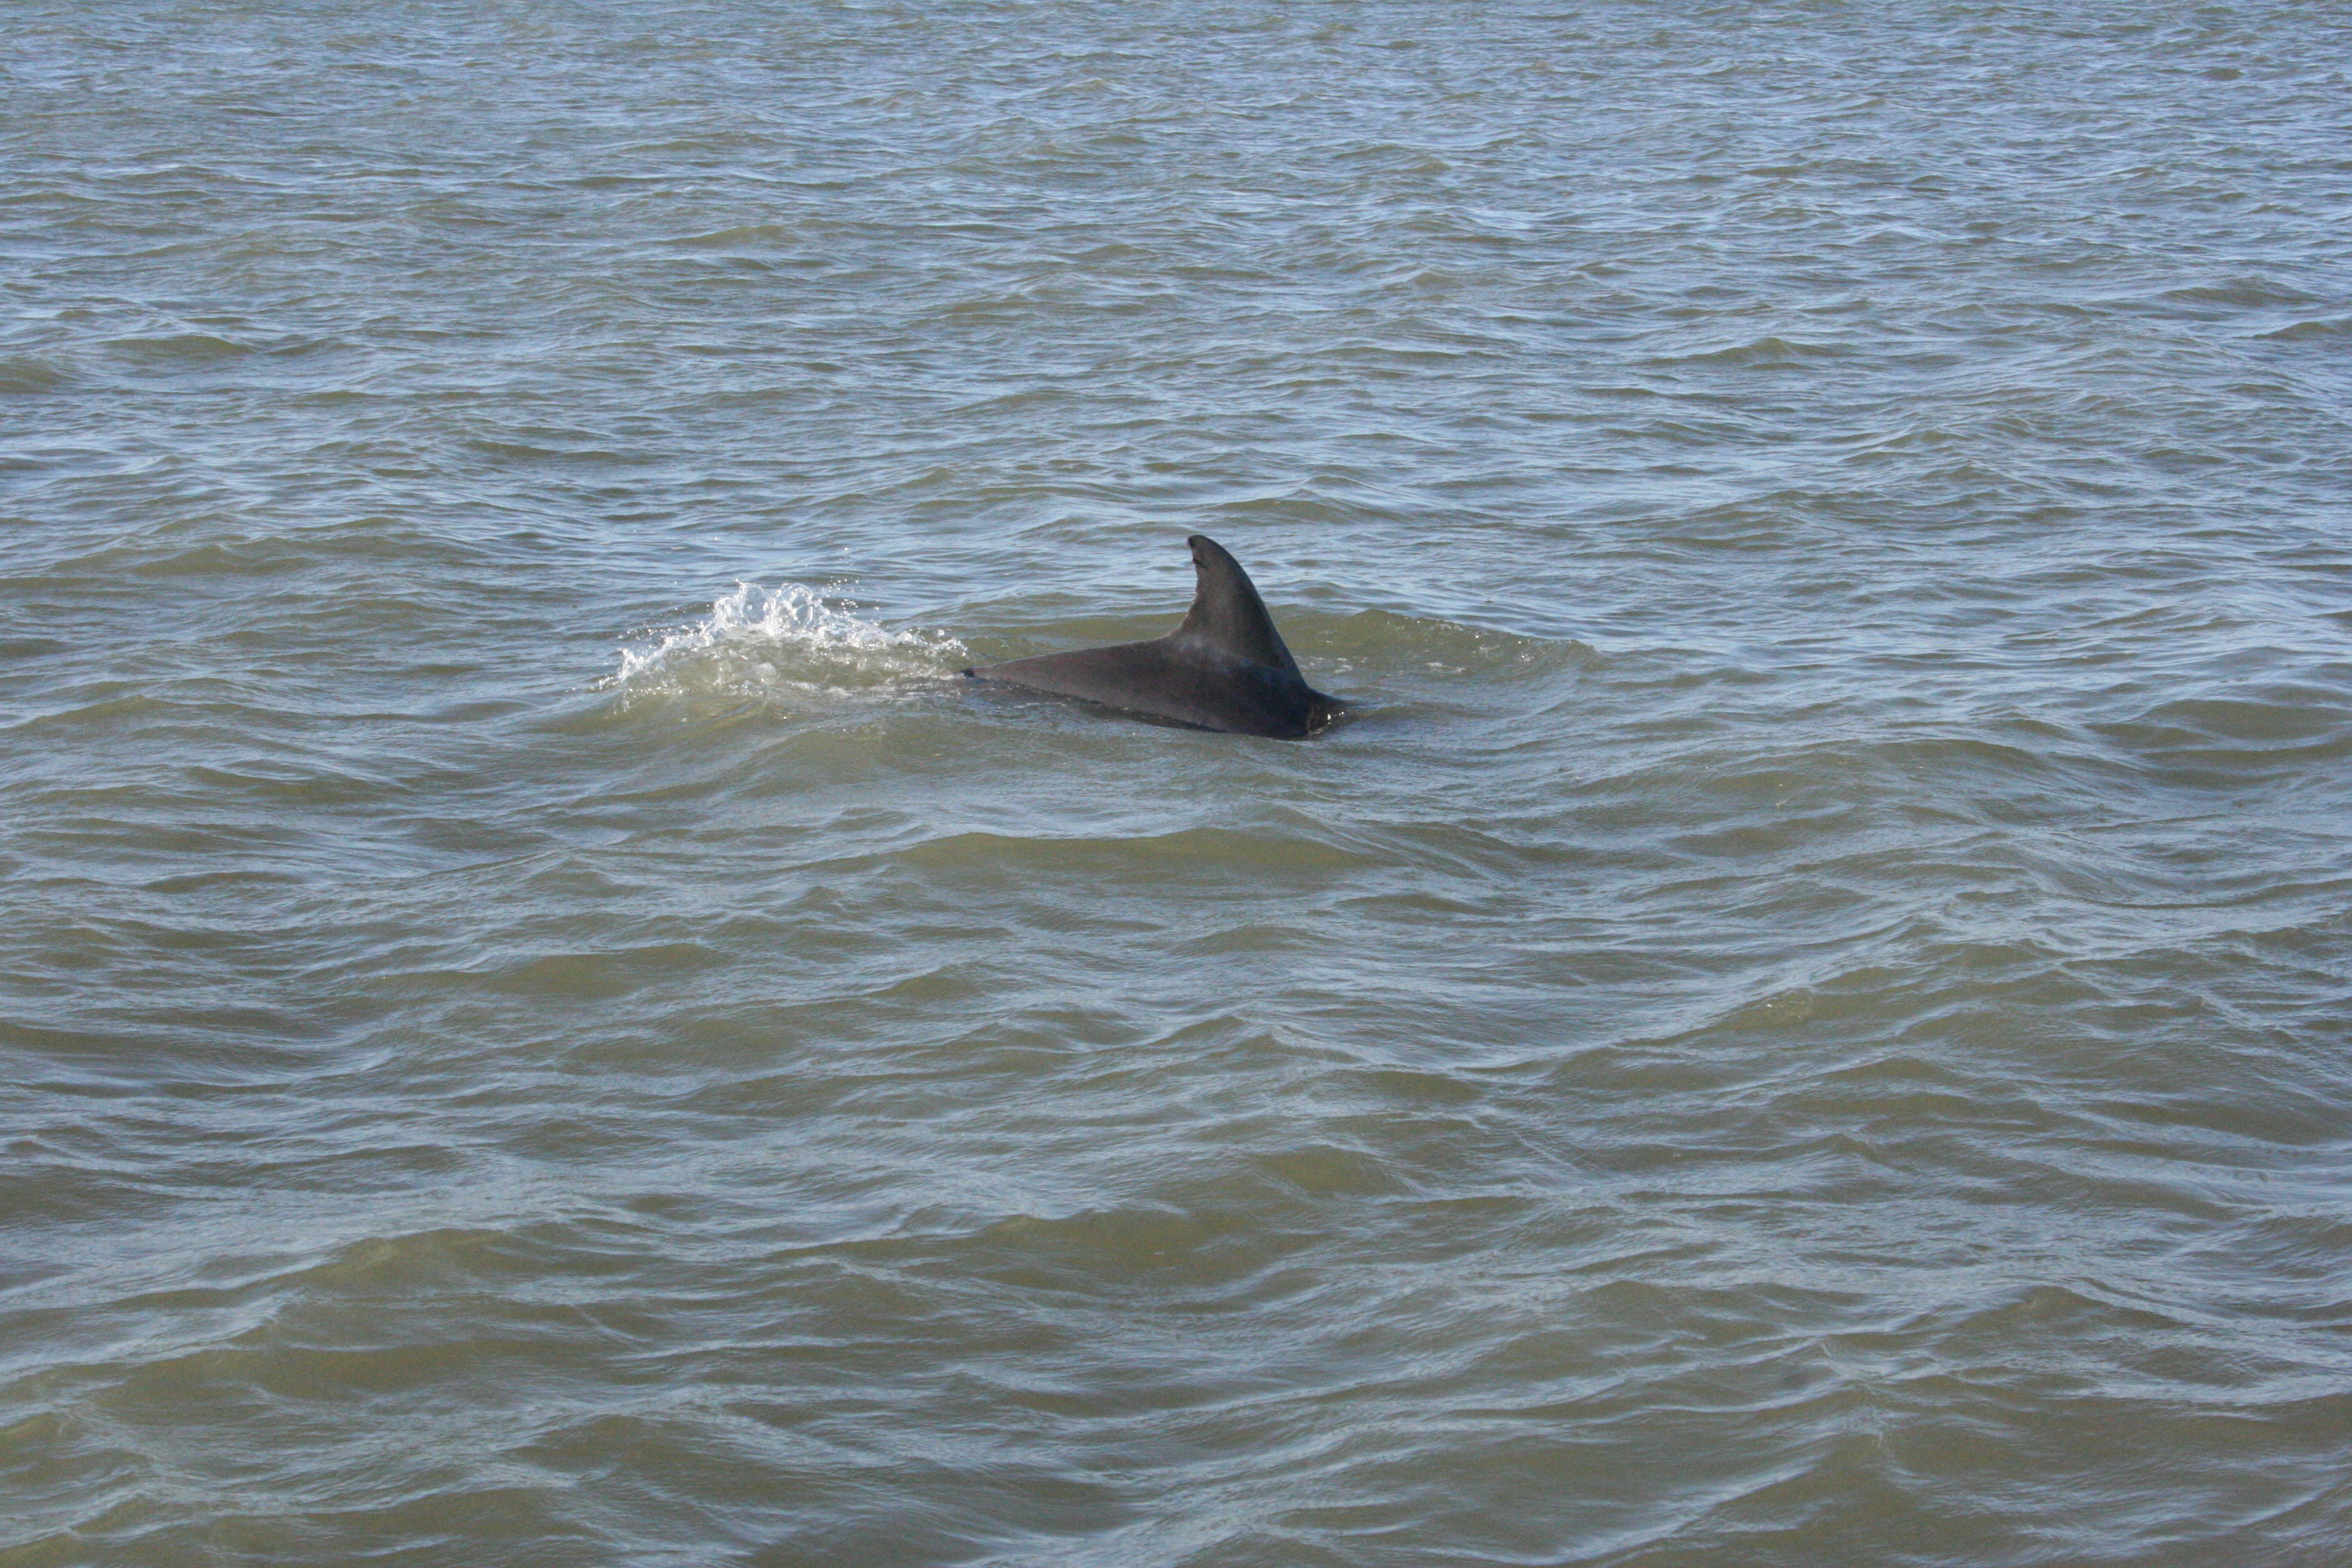 Porpoises frequent most notable fishing spots in Aransas Bay.